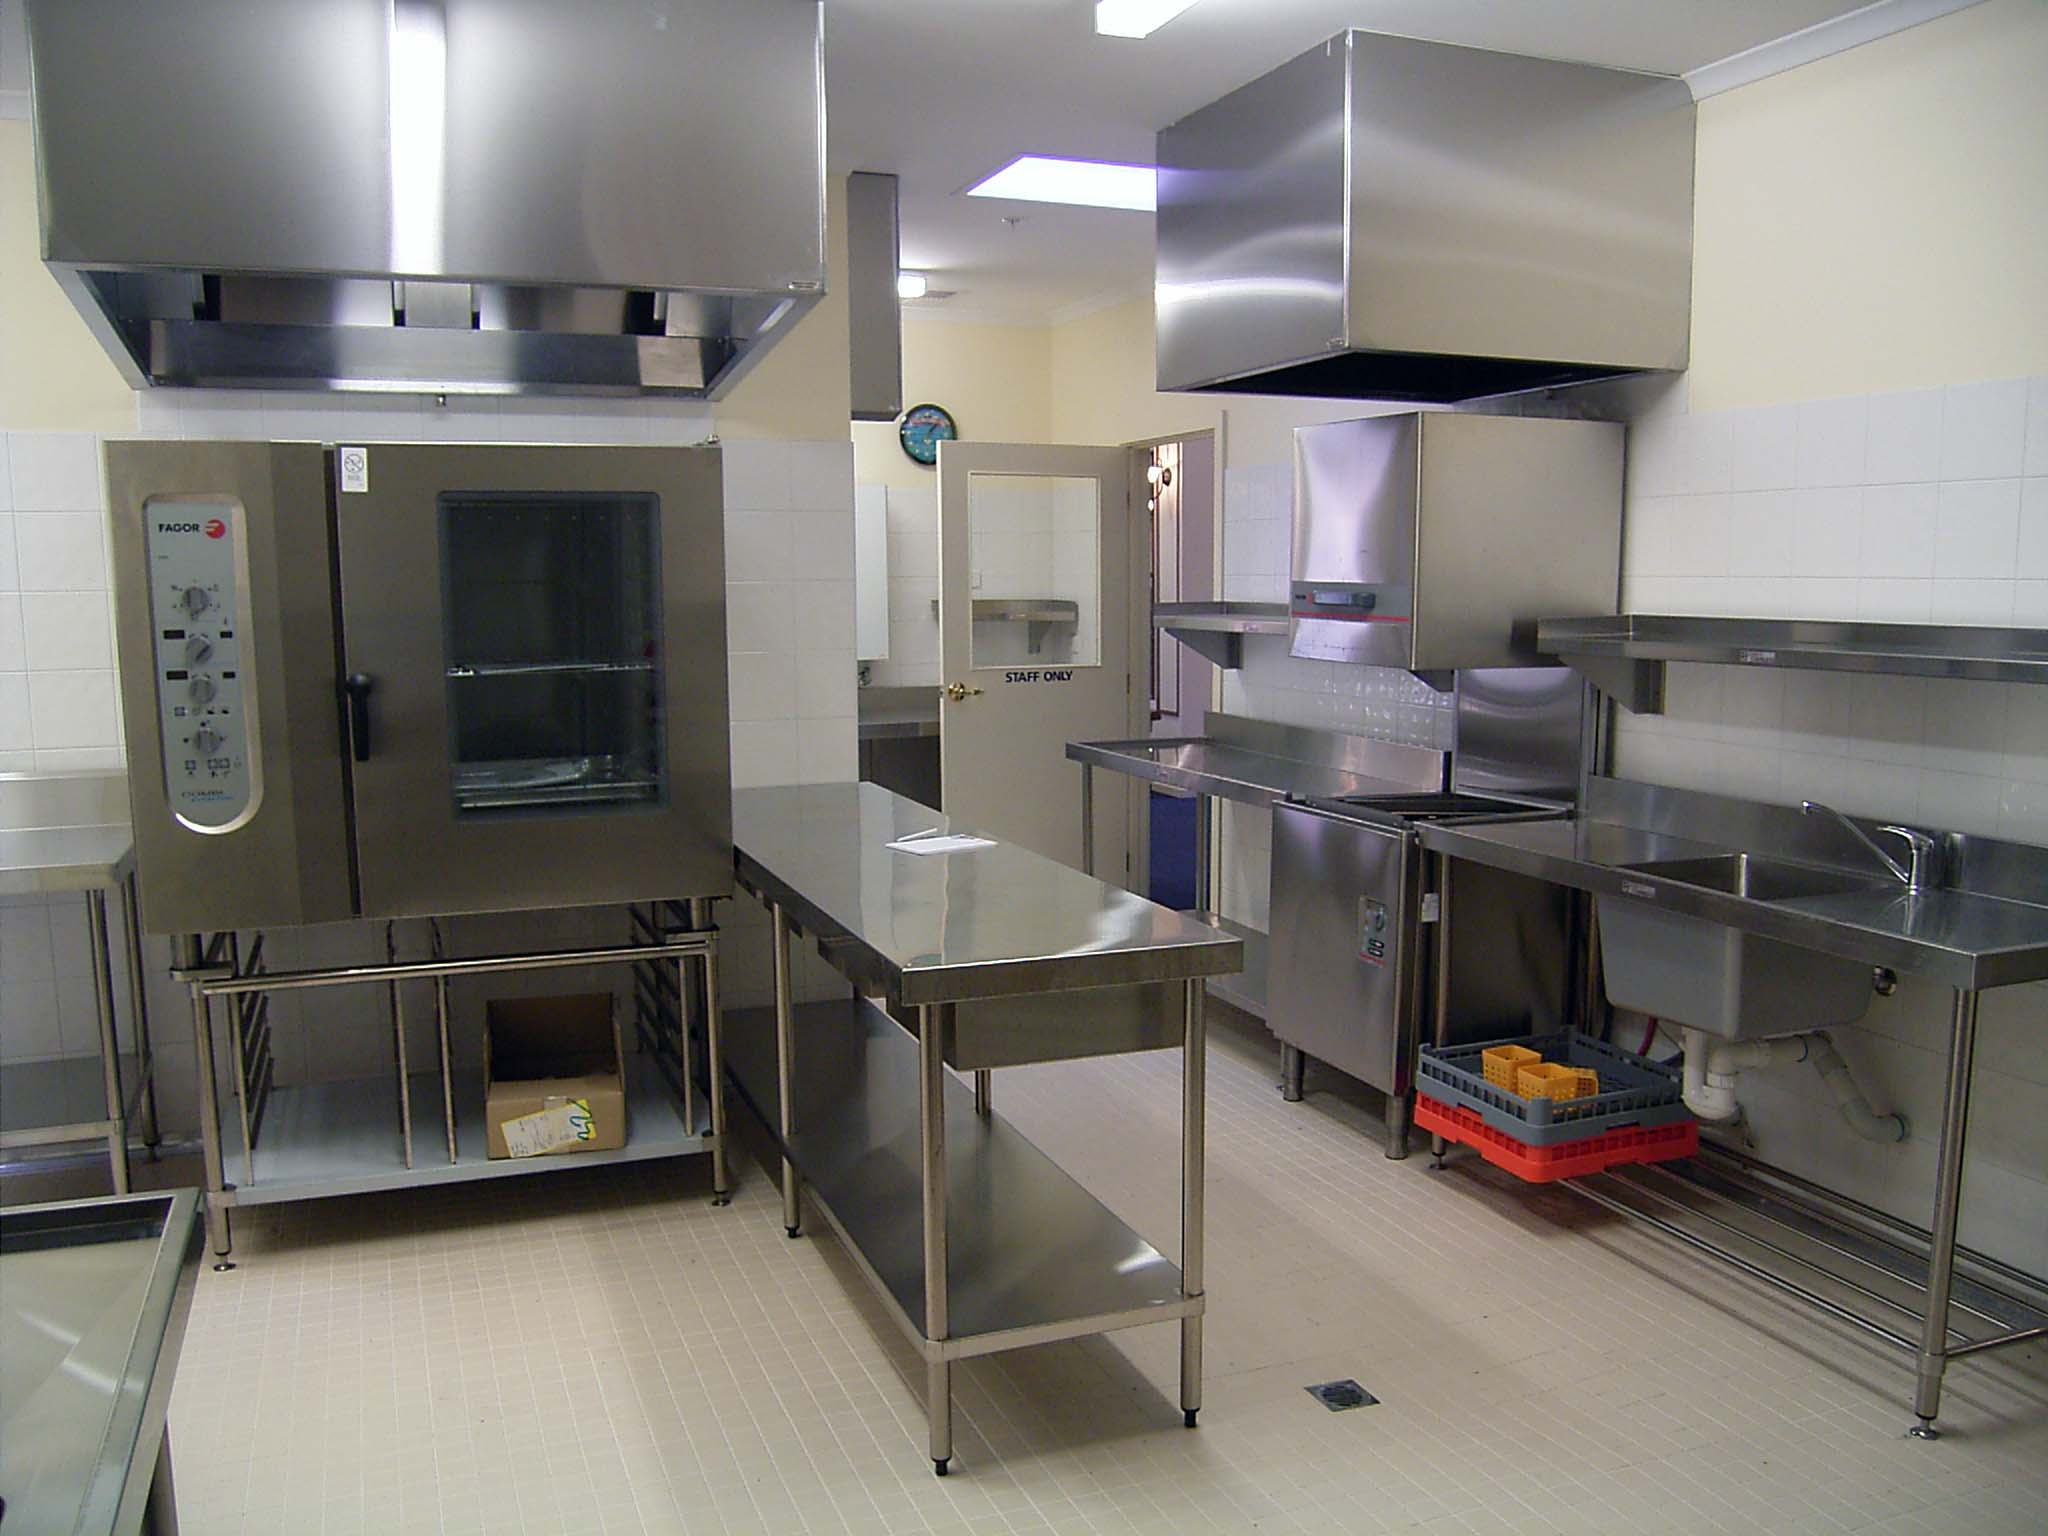 catering kitchen design home design decor reviews commercial kitchen floor plans find house plans custom commercial